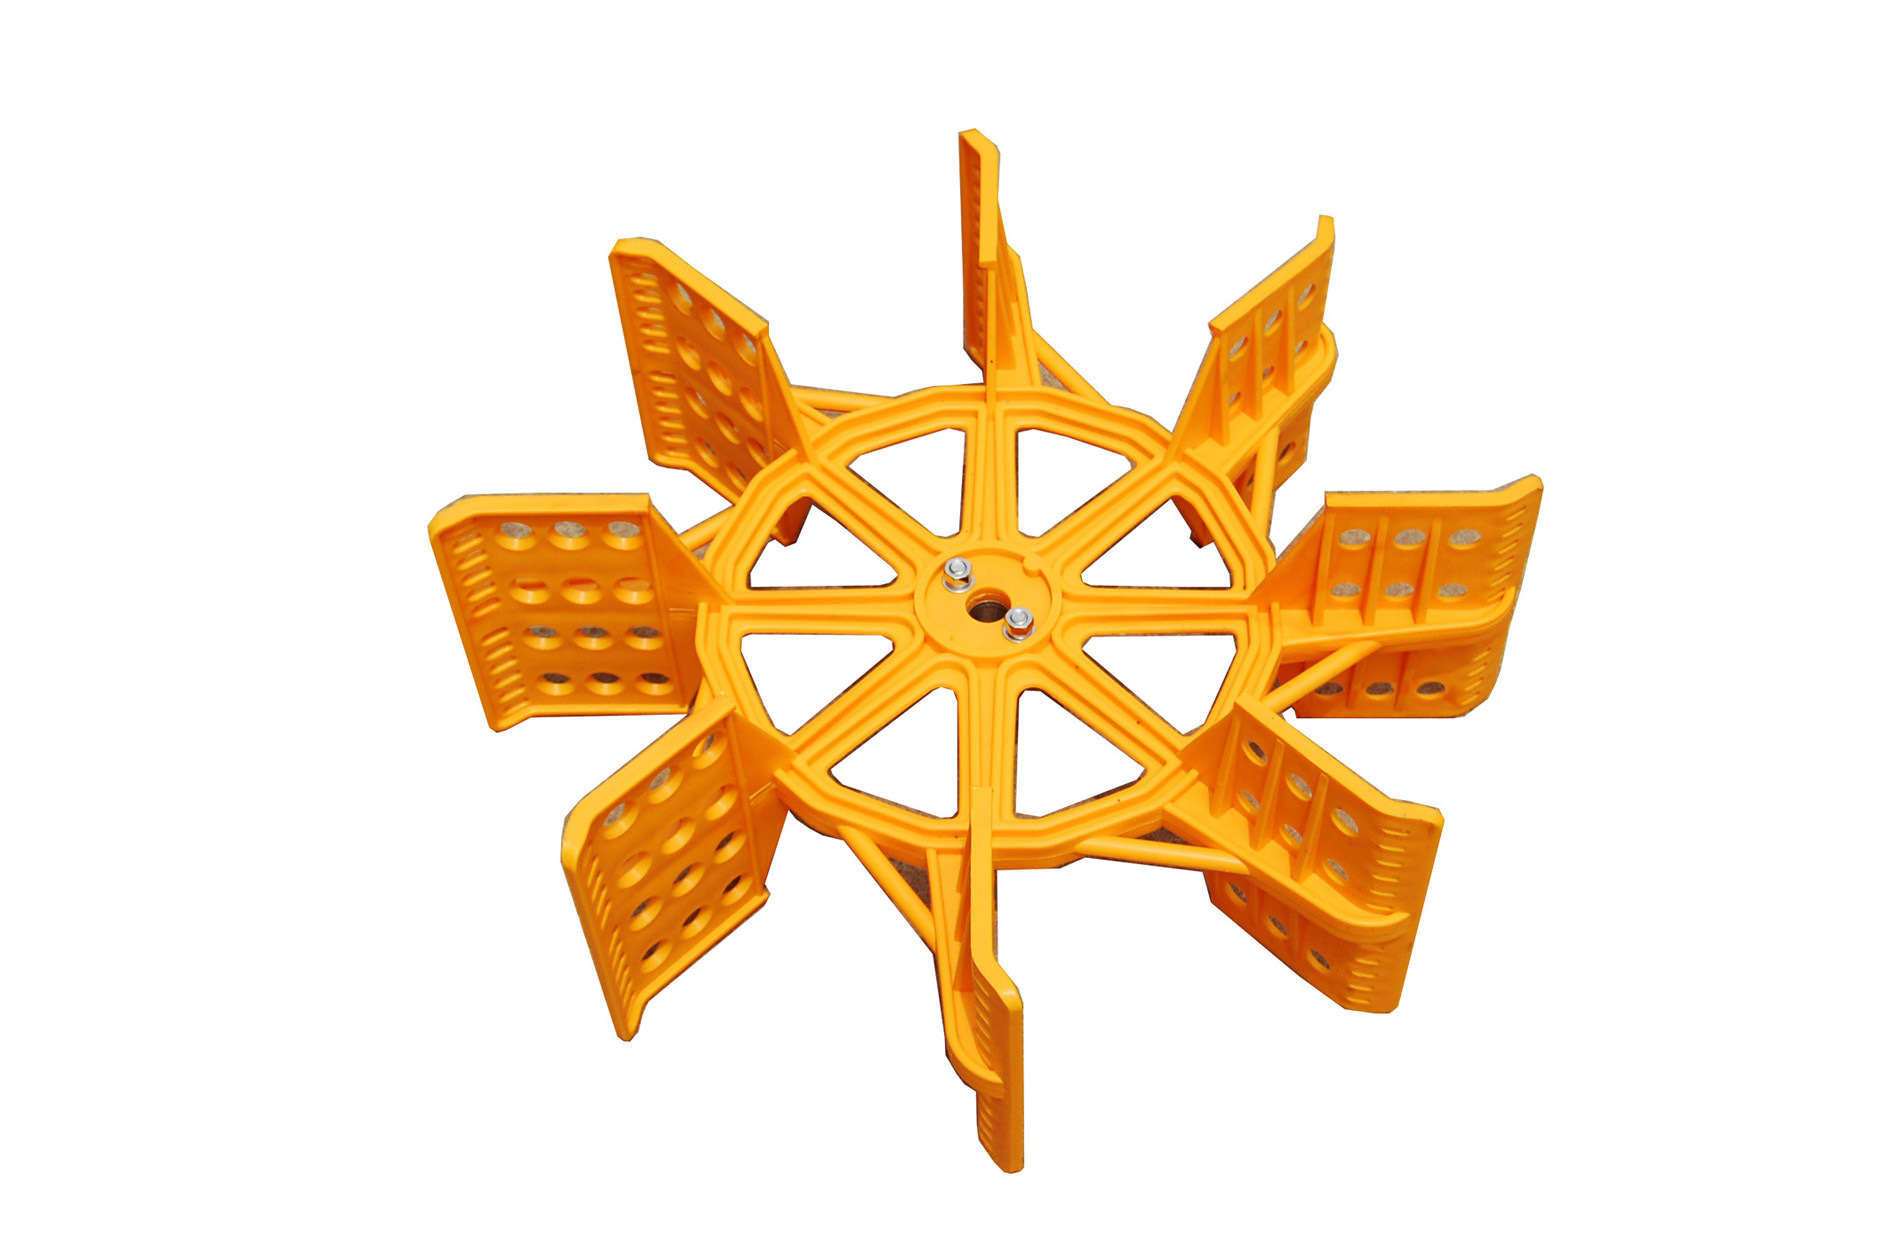 2PCS Paddle Wheel Aerator (YC0.75)